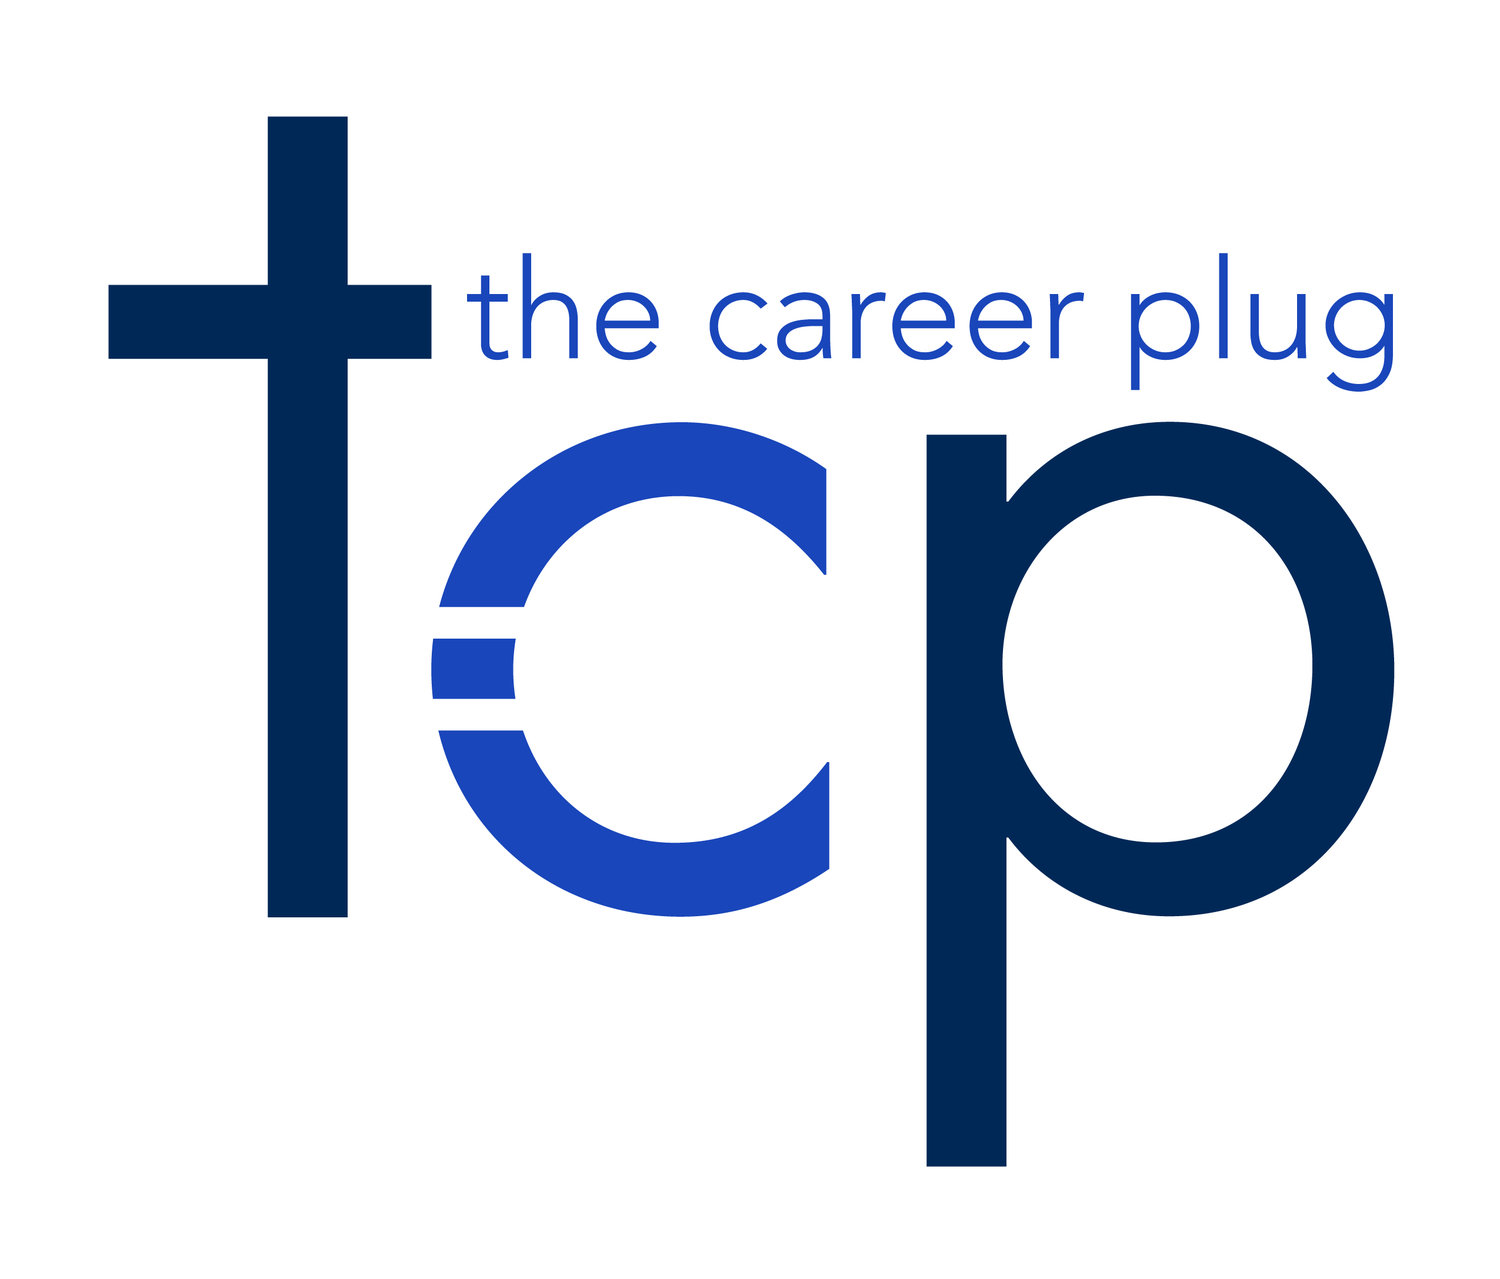 tcp define your career the career plug the career plug